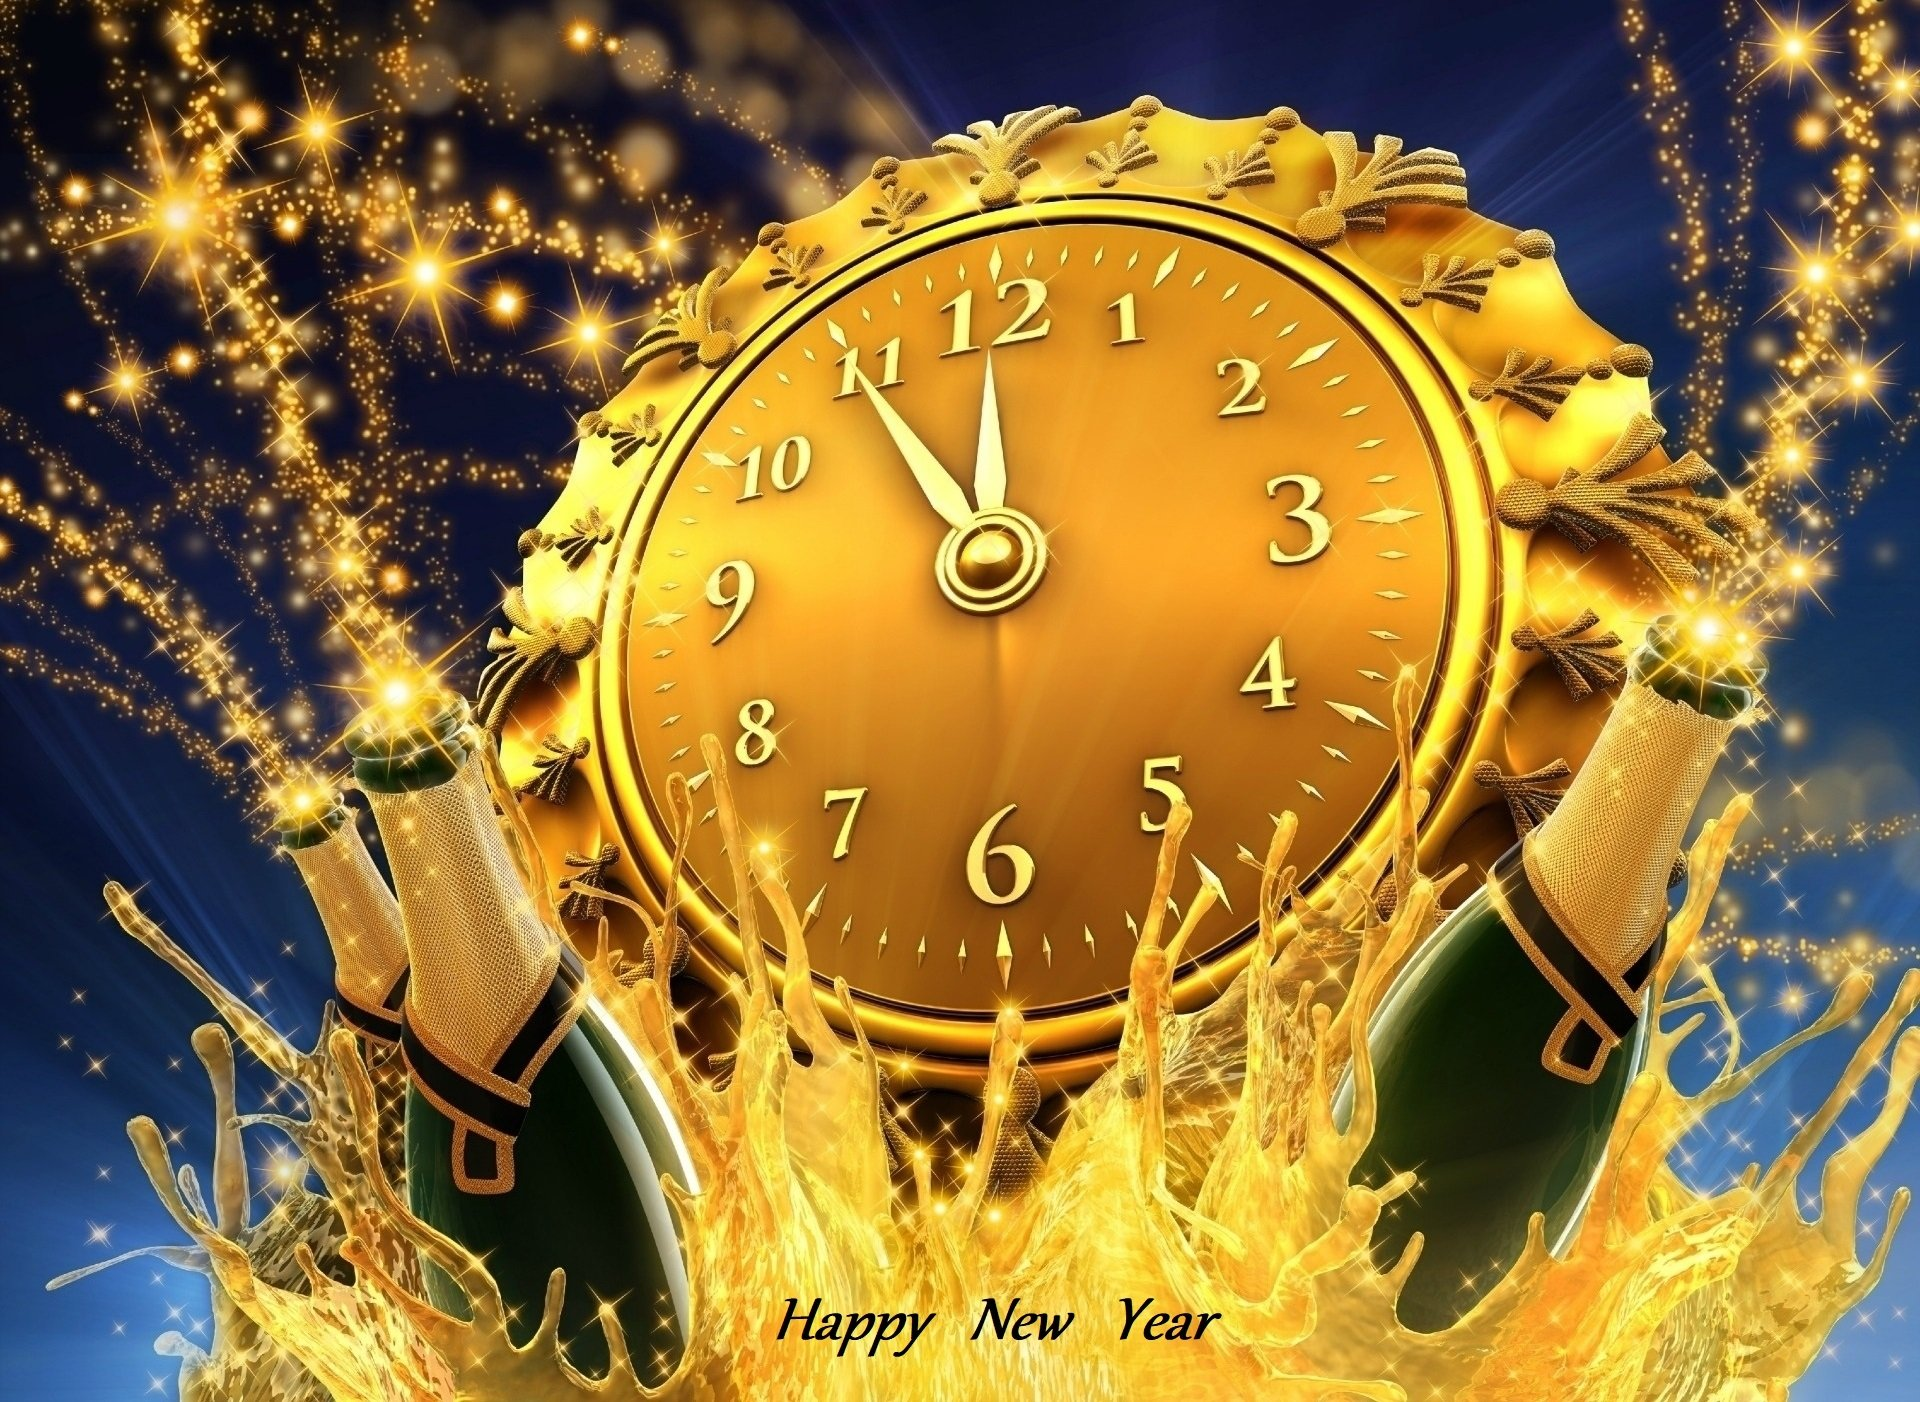 Holiday - New Year  Happy New Year Champagne Clock Golden Wallpaper